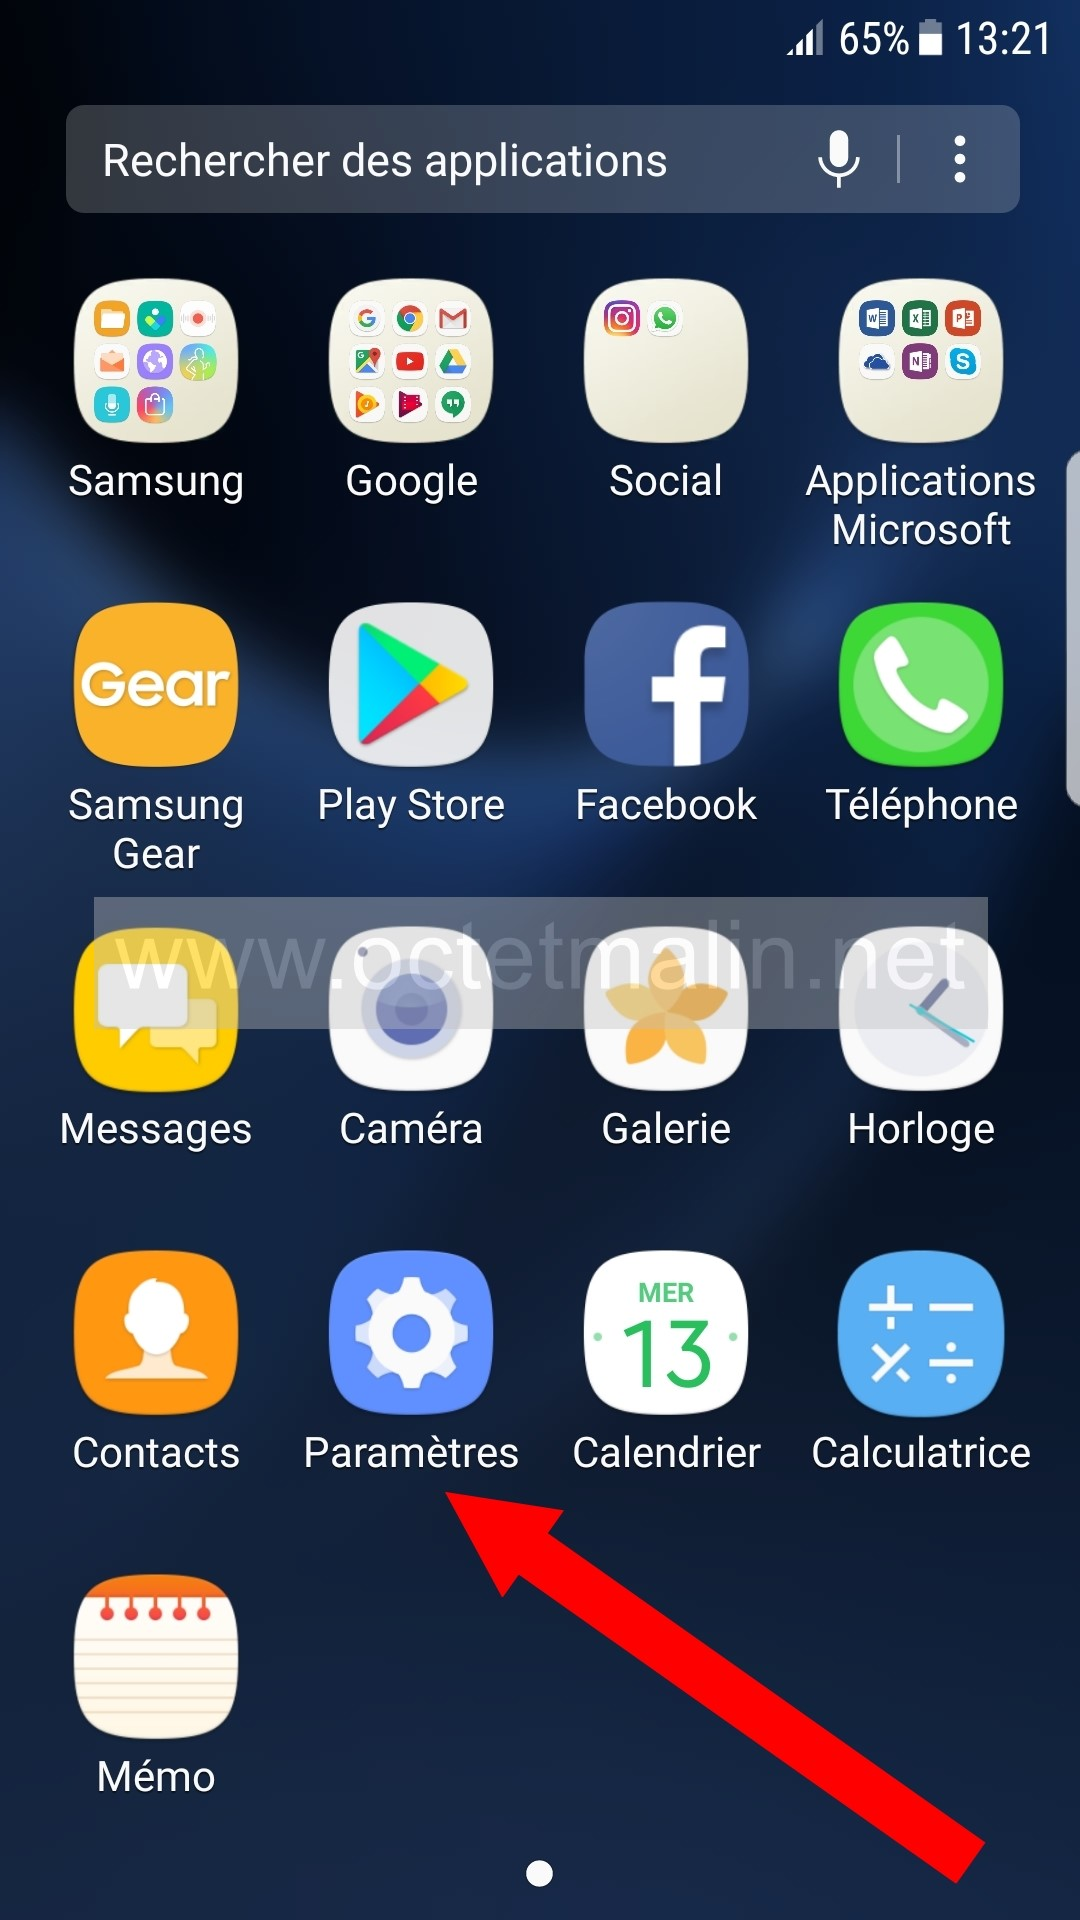 Calendrier Samsung S7.Android 7 0 0 Reinitialisation D Usine Samsung Galaxy S7